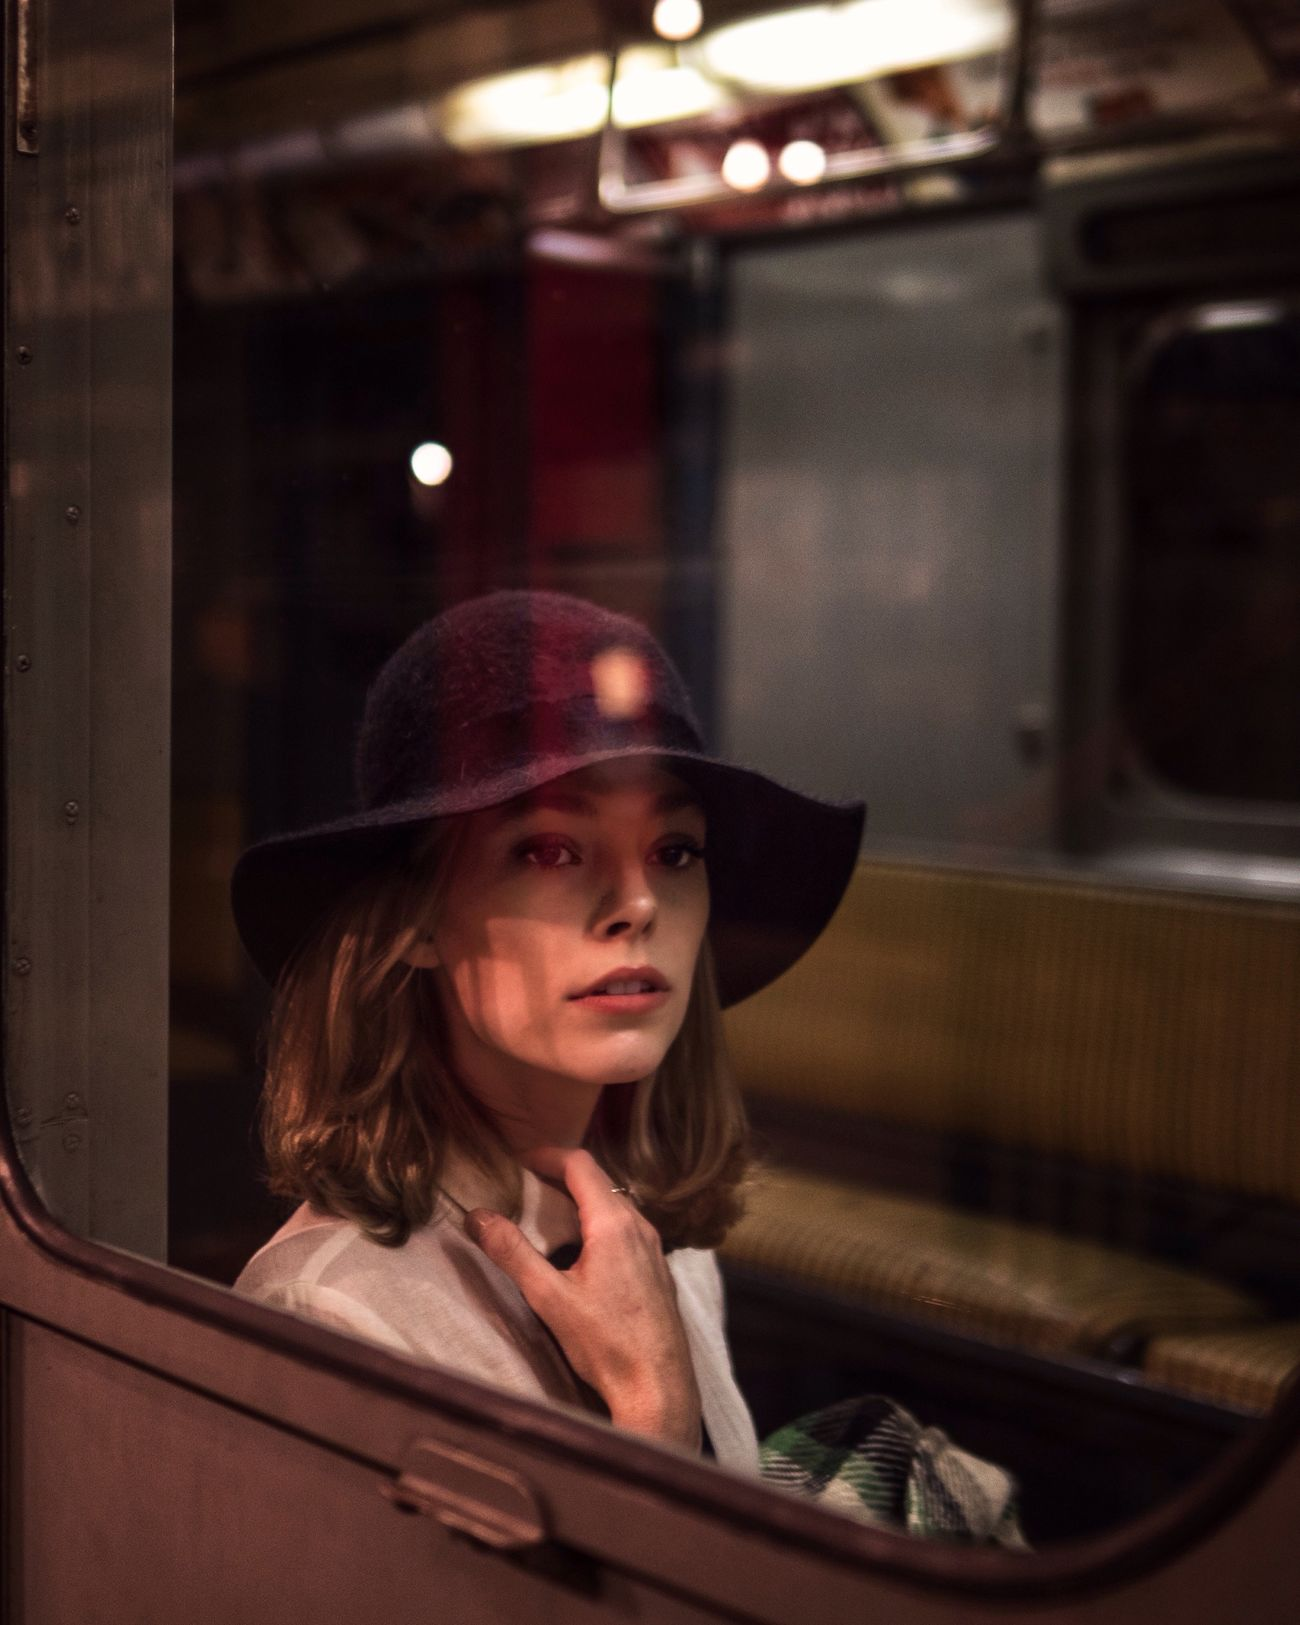 Reflection Indoors  Young Adult Adult Streetphotography Subway Train Vintage EyeEm Best Shots Women Who Inspire You Cinematic Portrait Young Women Subway Hat